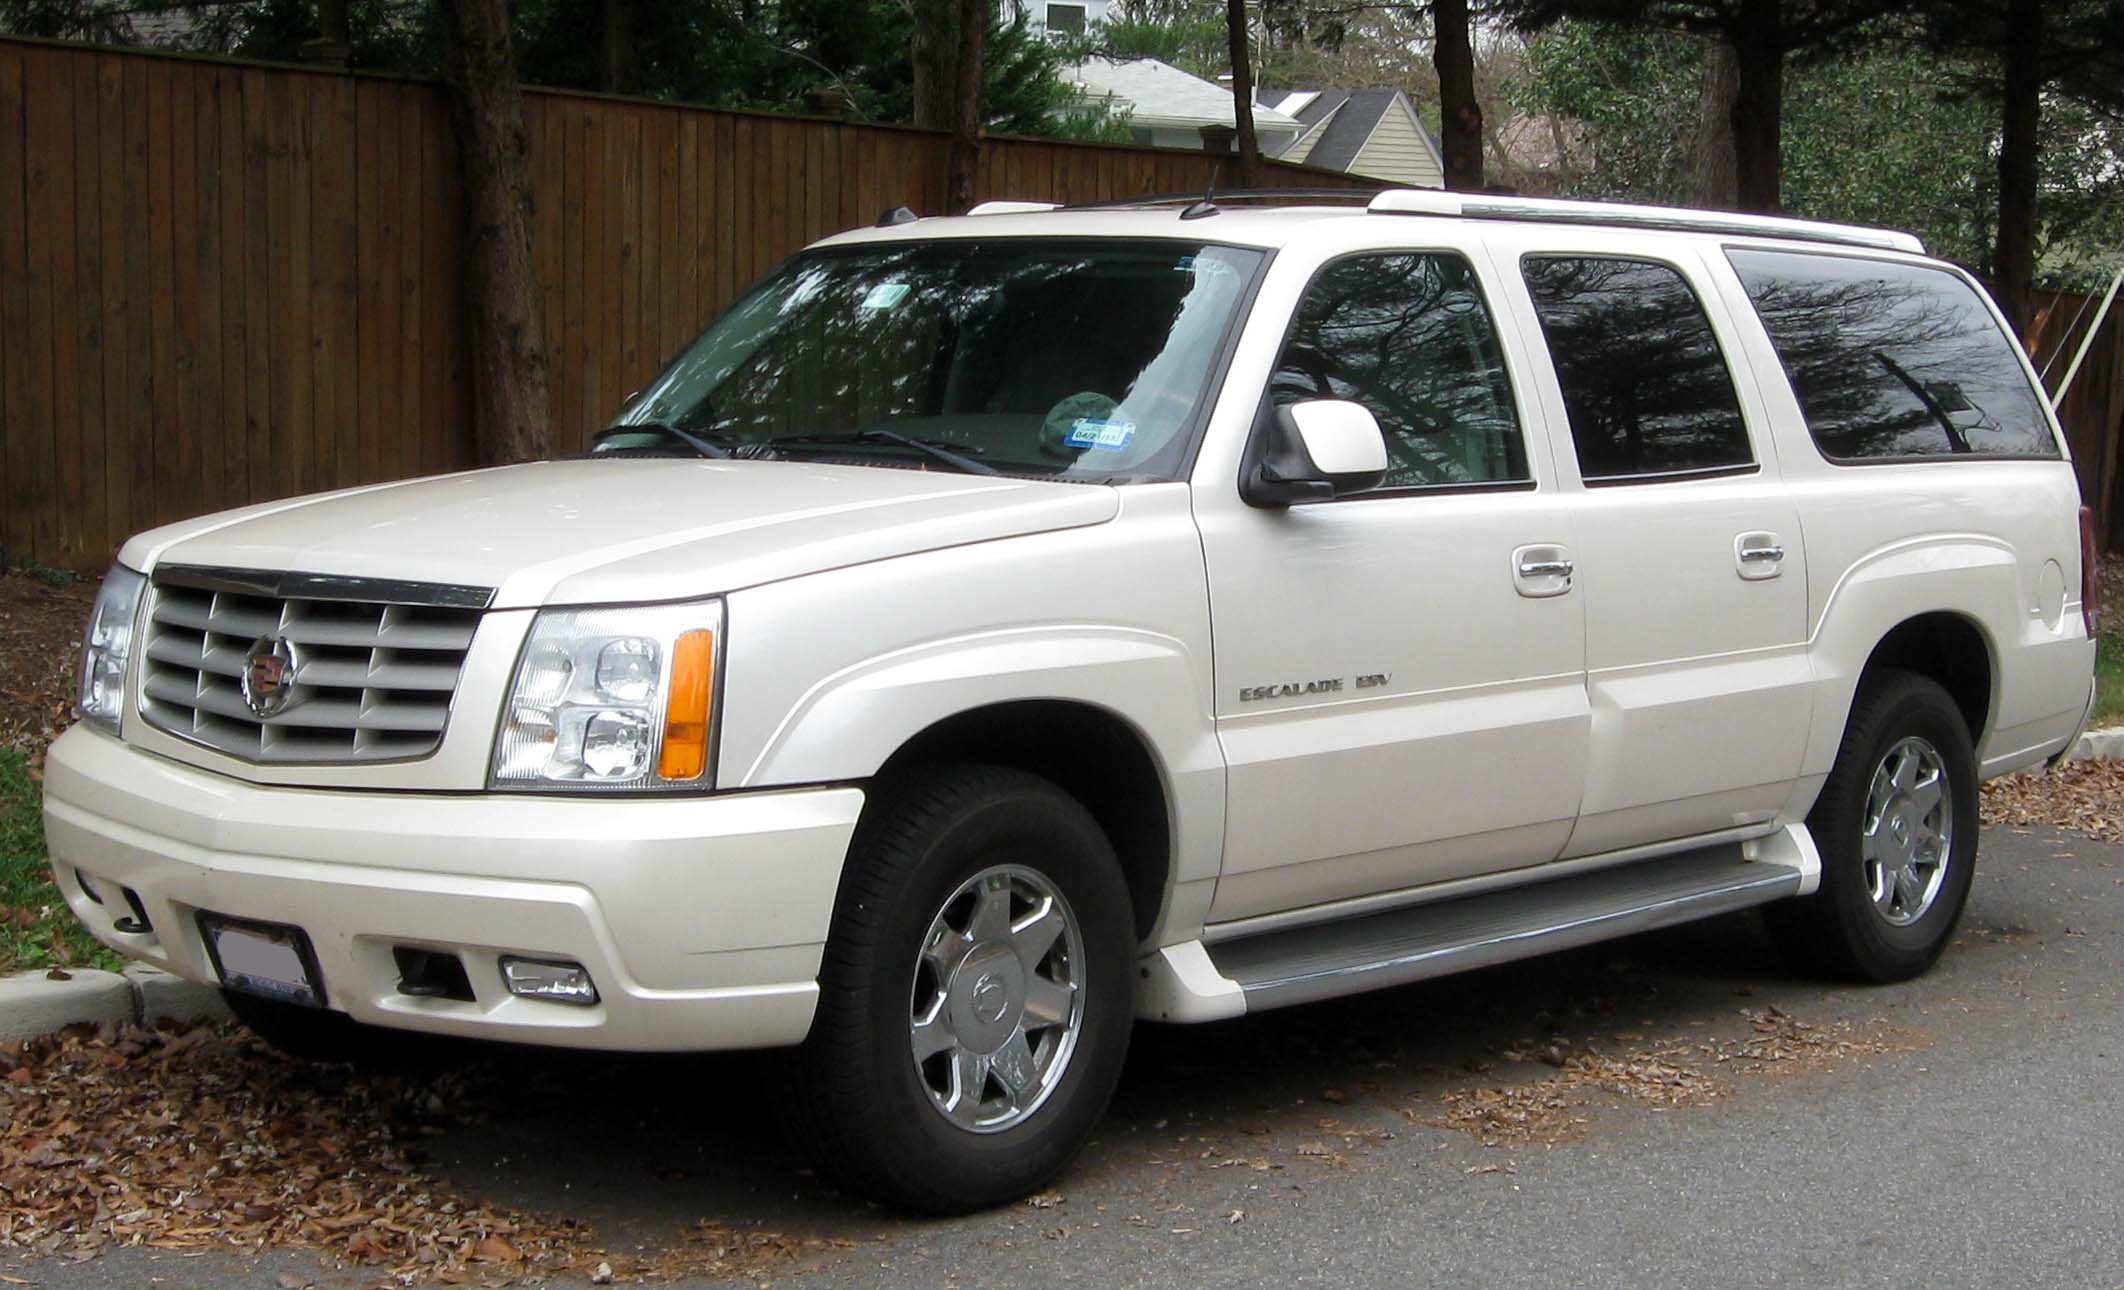 Cadillac Escalade car - Color: White  // Description: exclusive